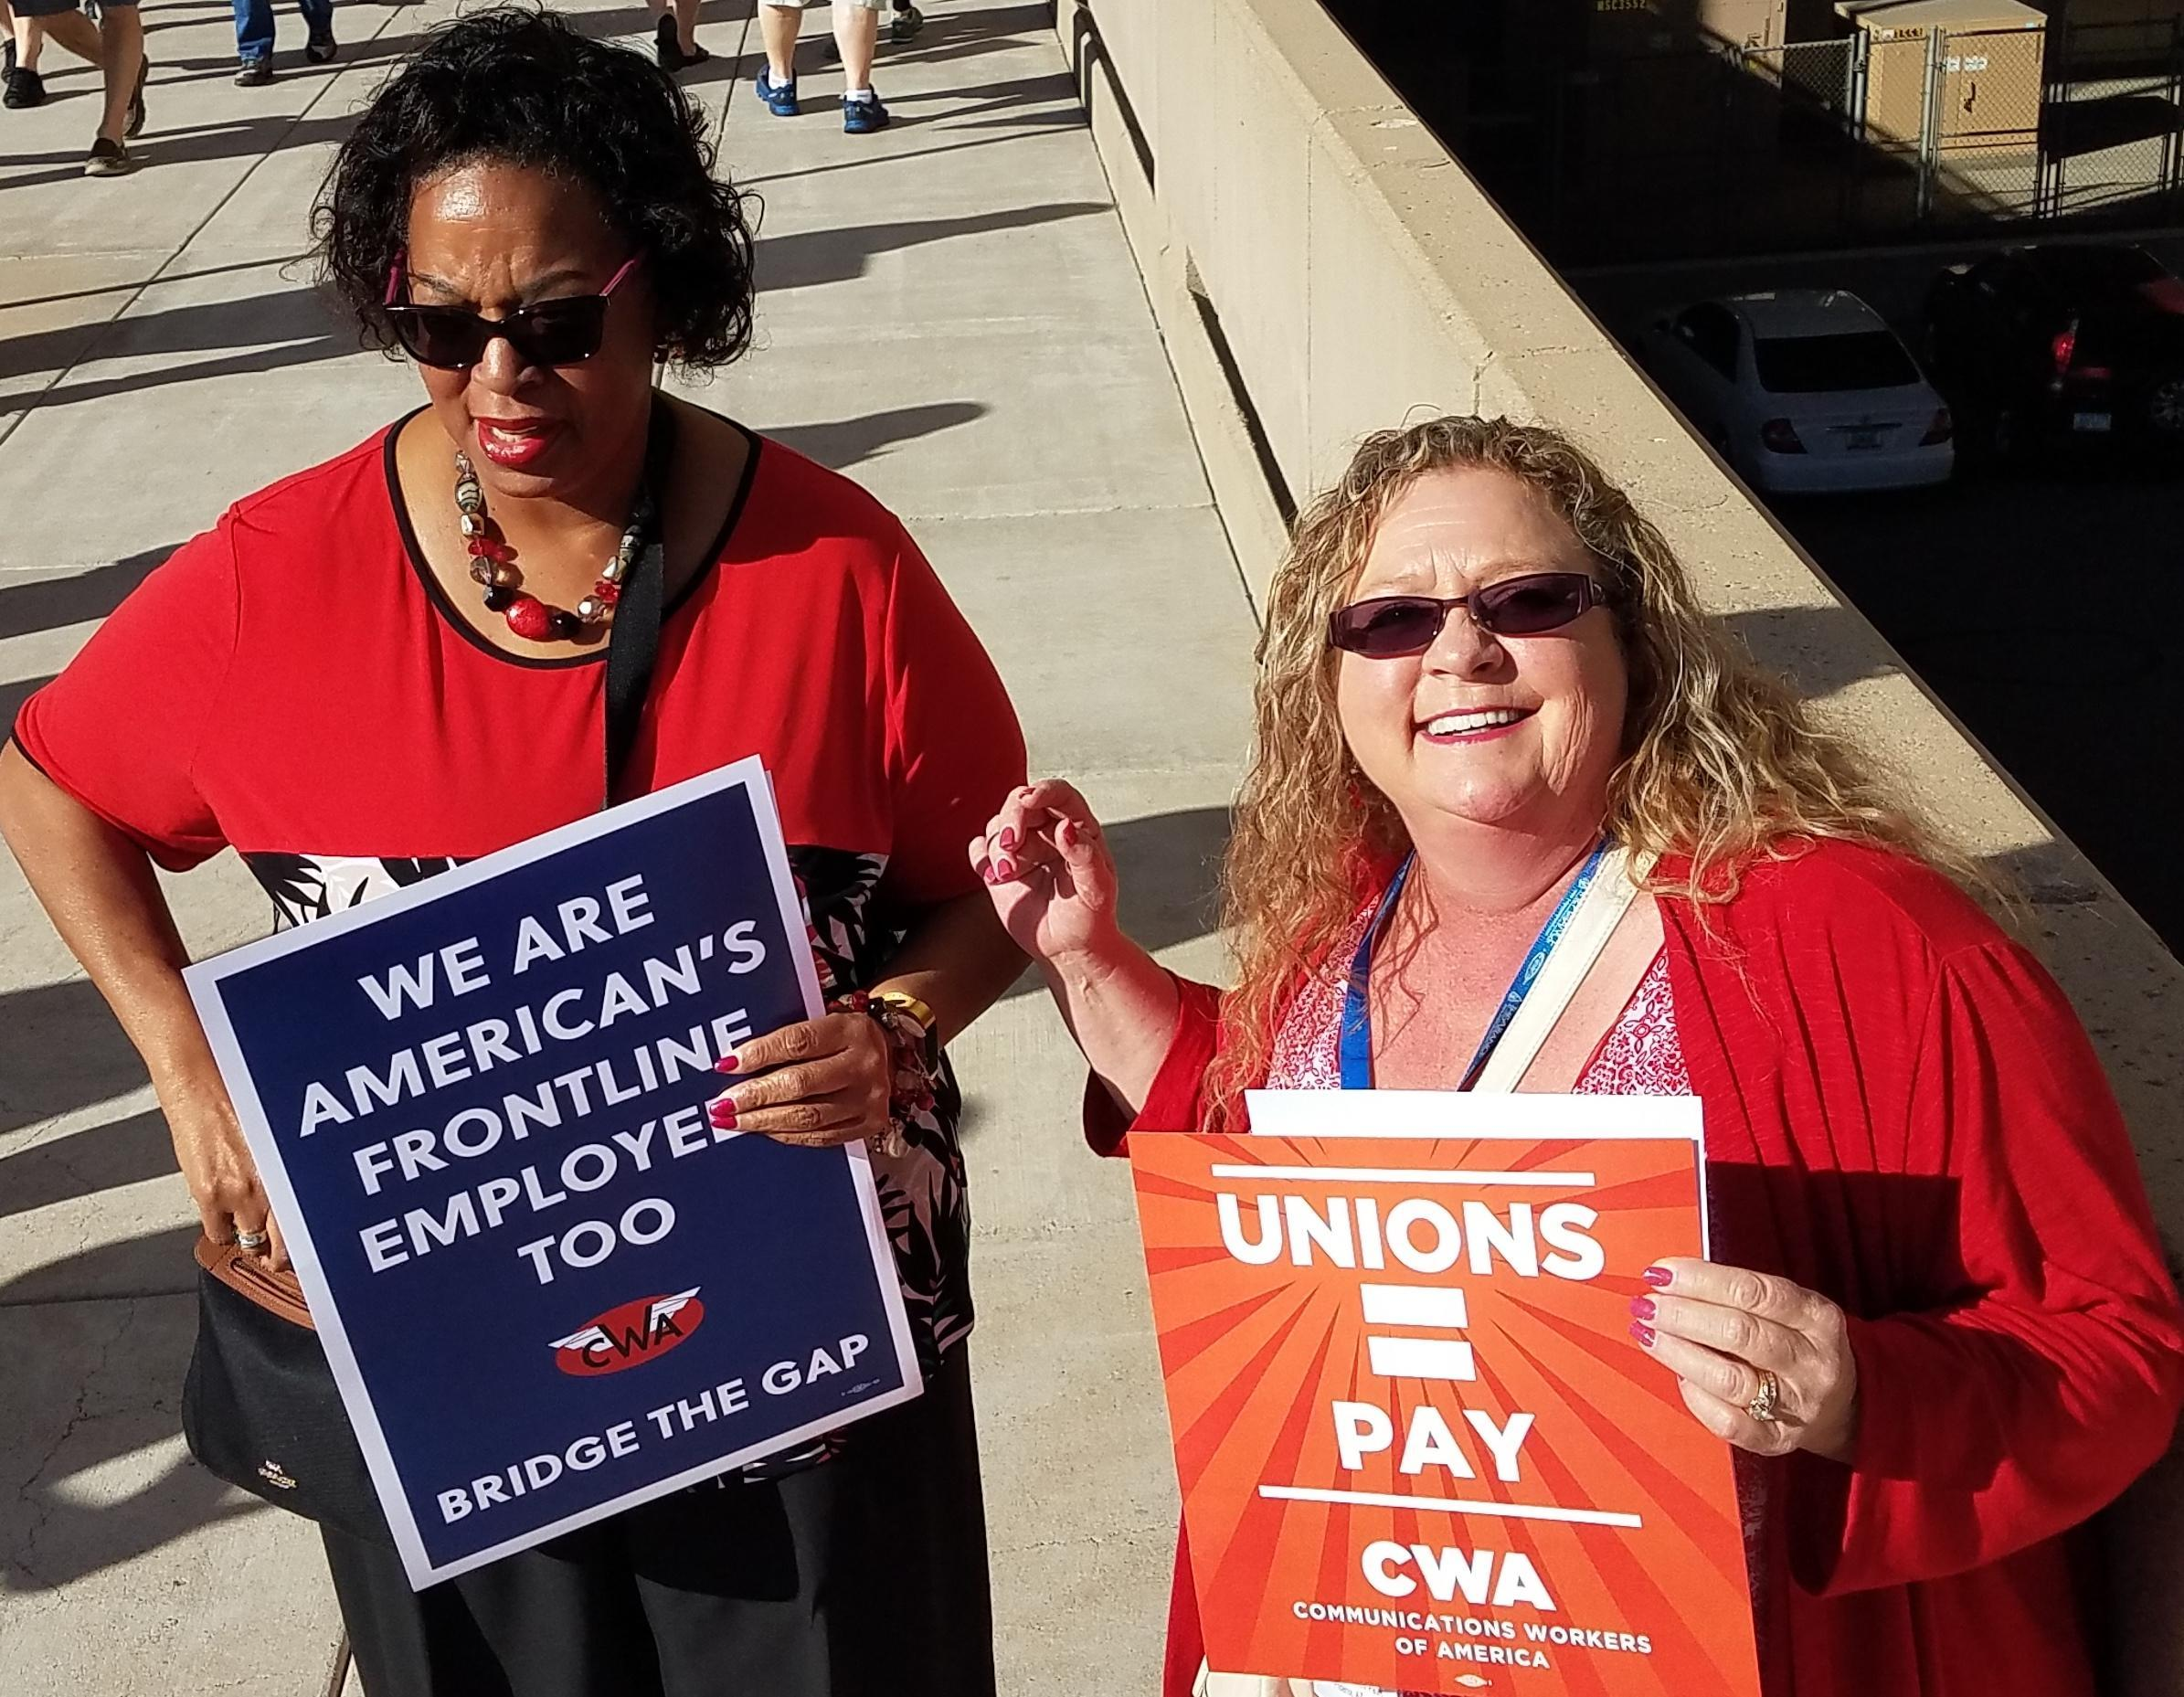 Workers in Phoenix demand a fair contract